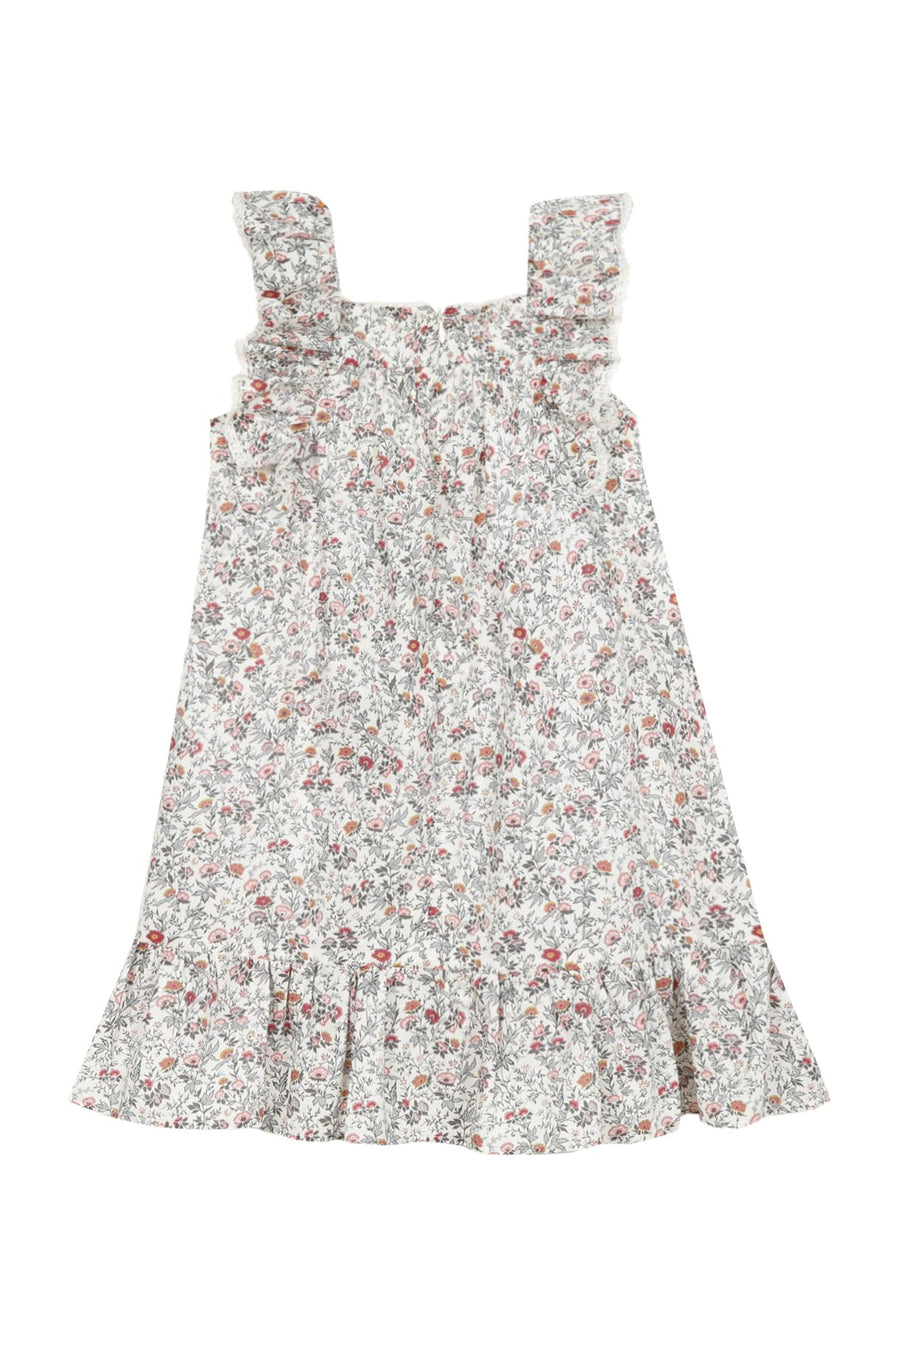 Rose Magnolia Dress by Tartine et Chocolat